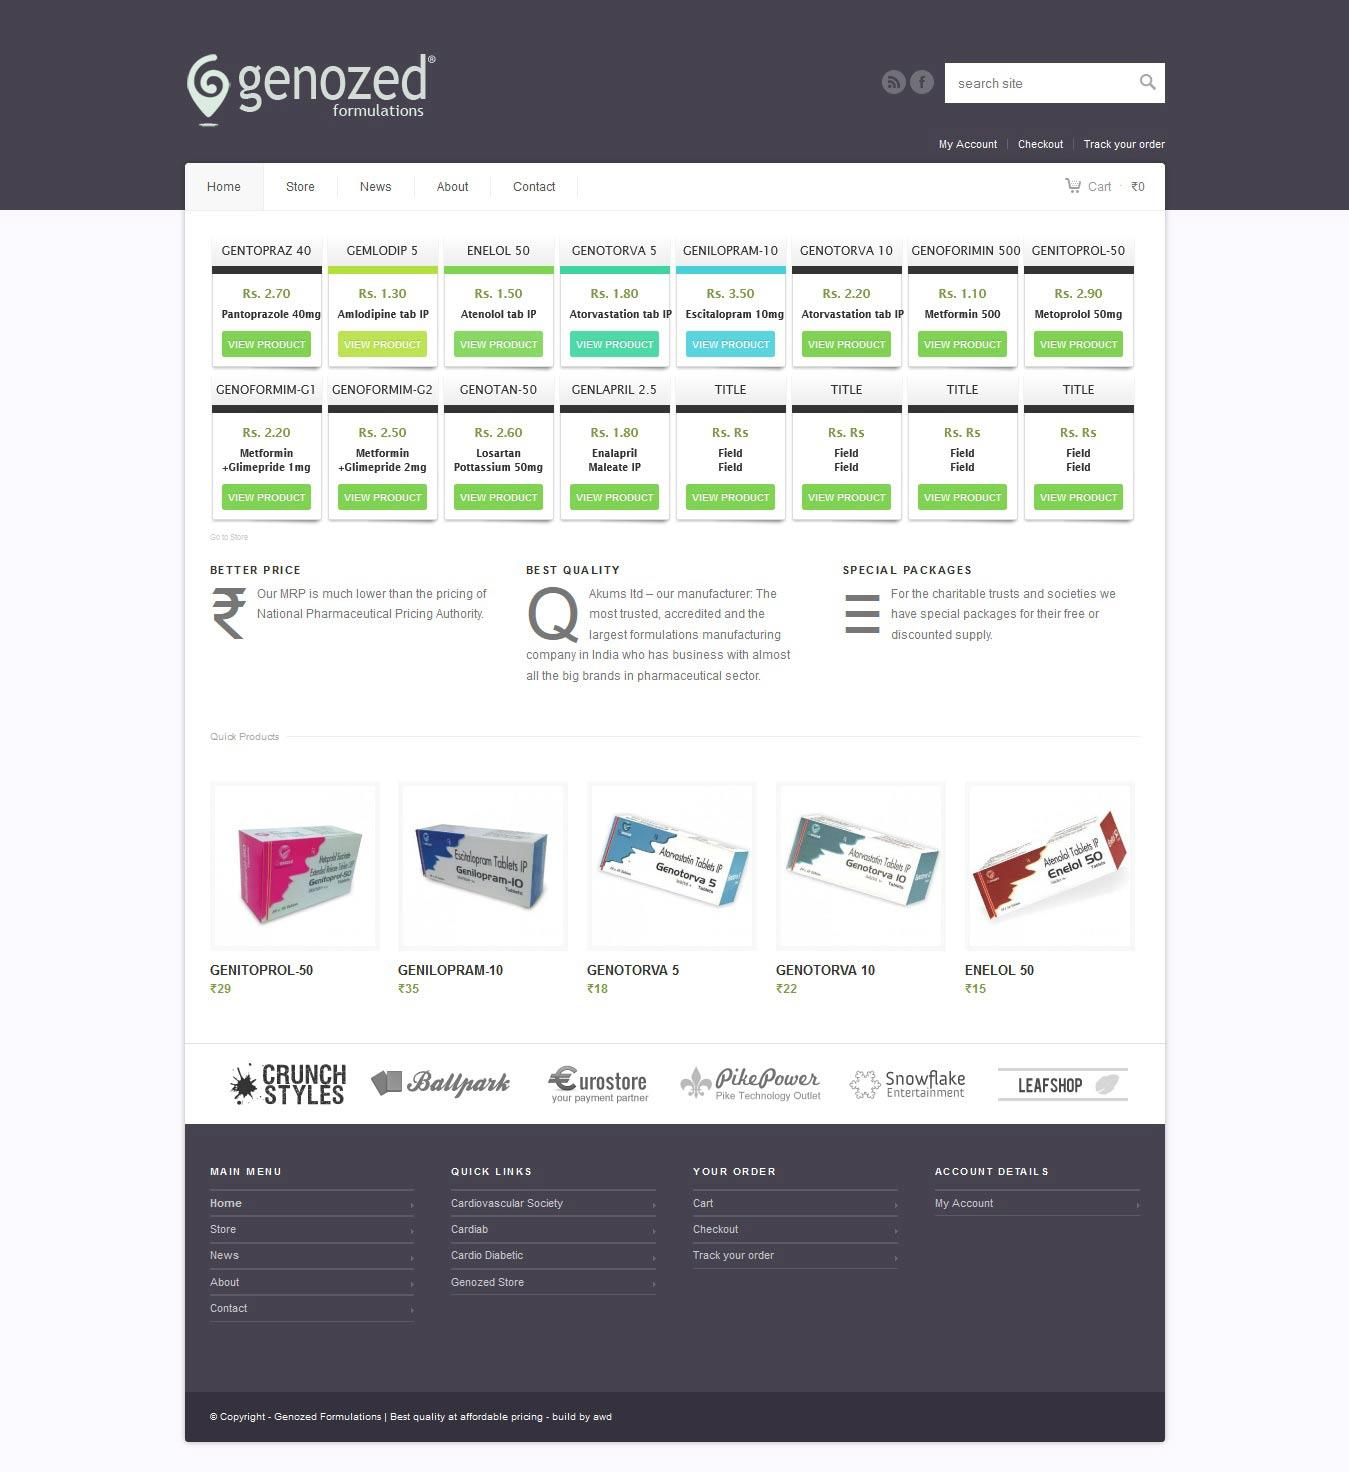 Total Wordpress Customization  (PHP,HTML,CSS,JQUERY) by awadnajilp - 27946